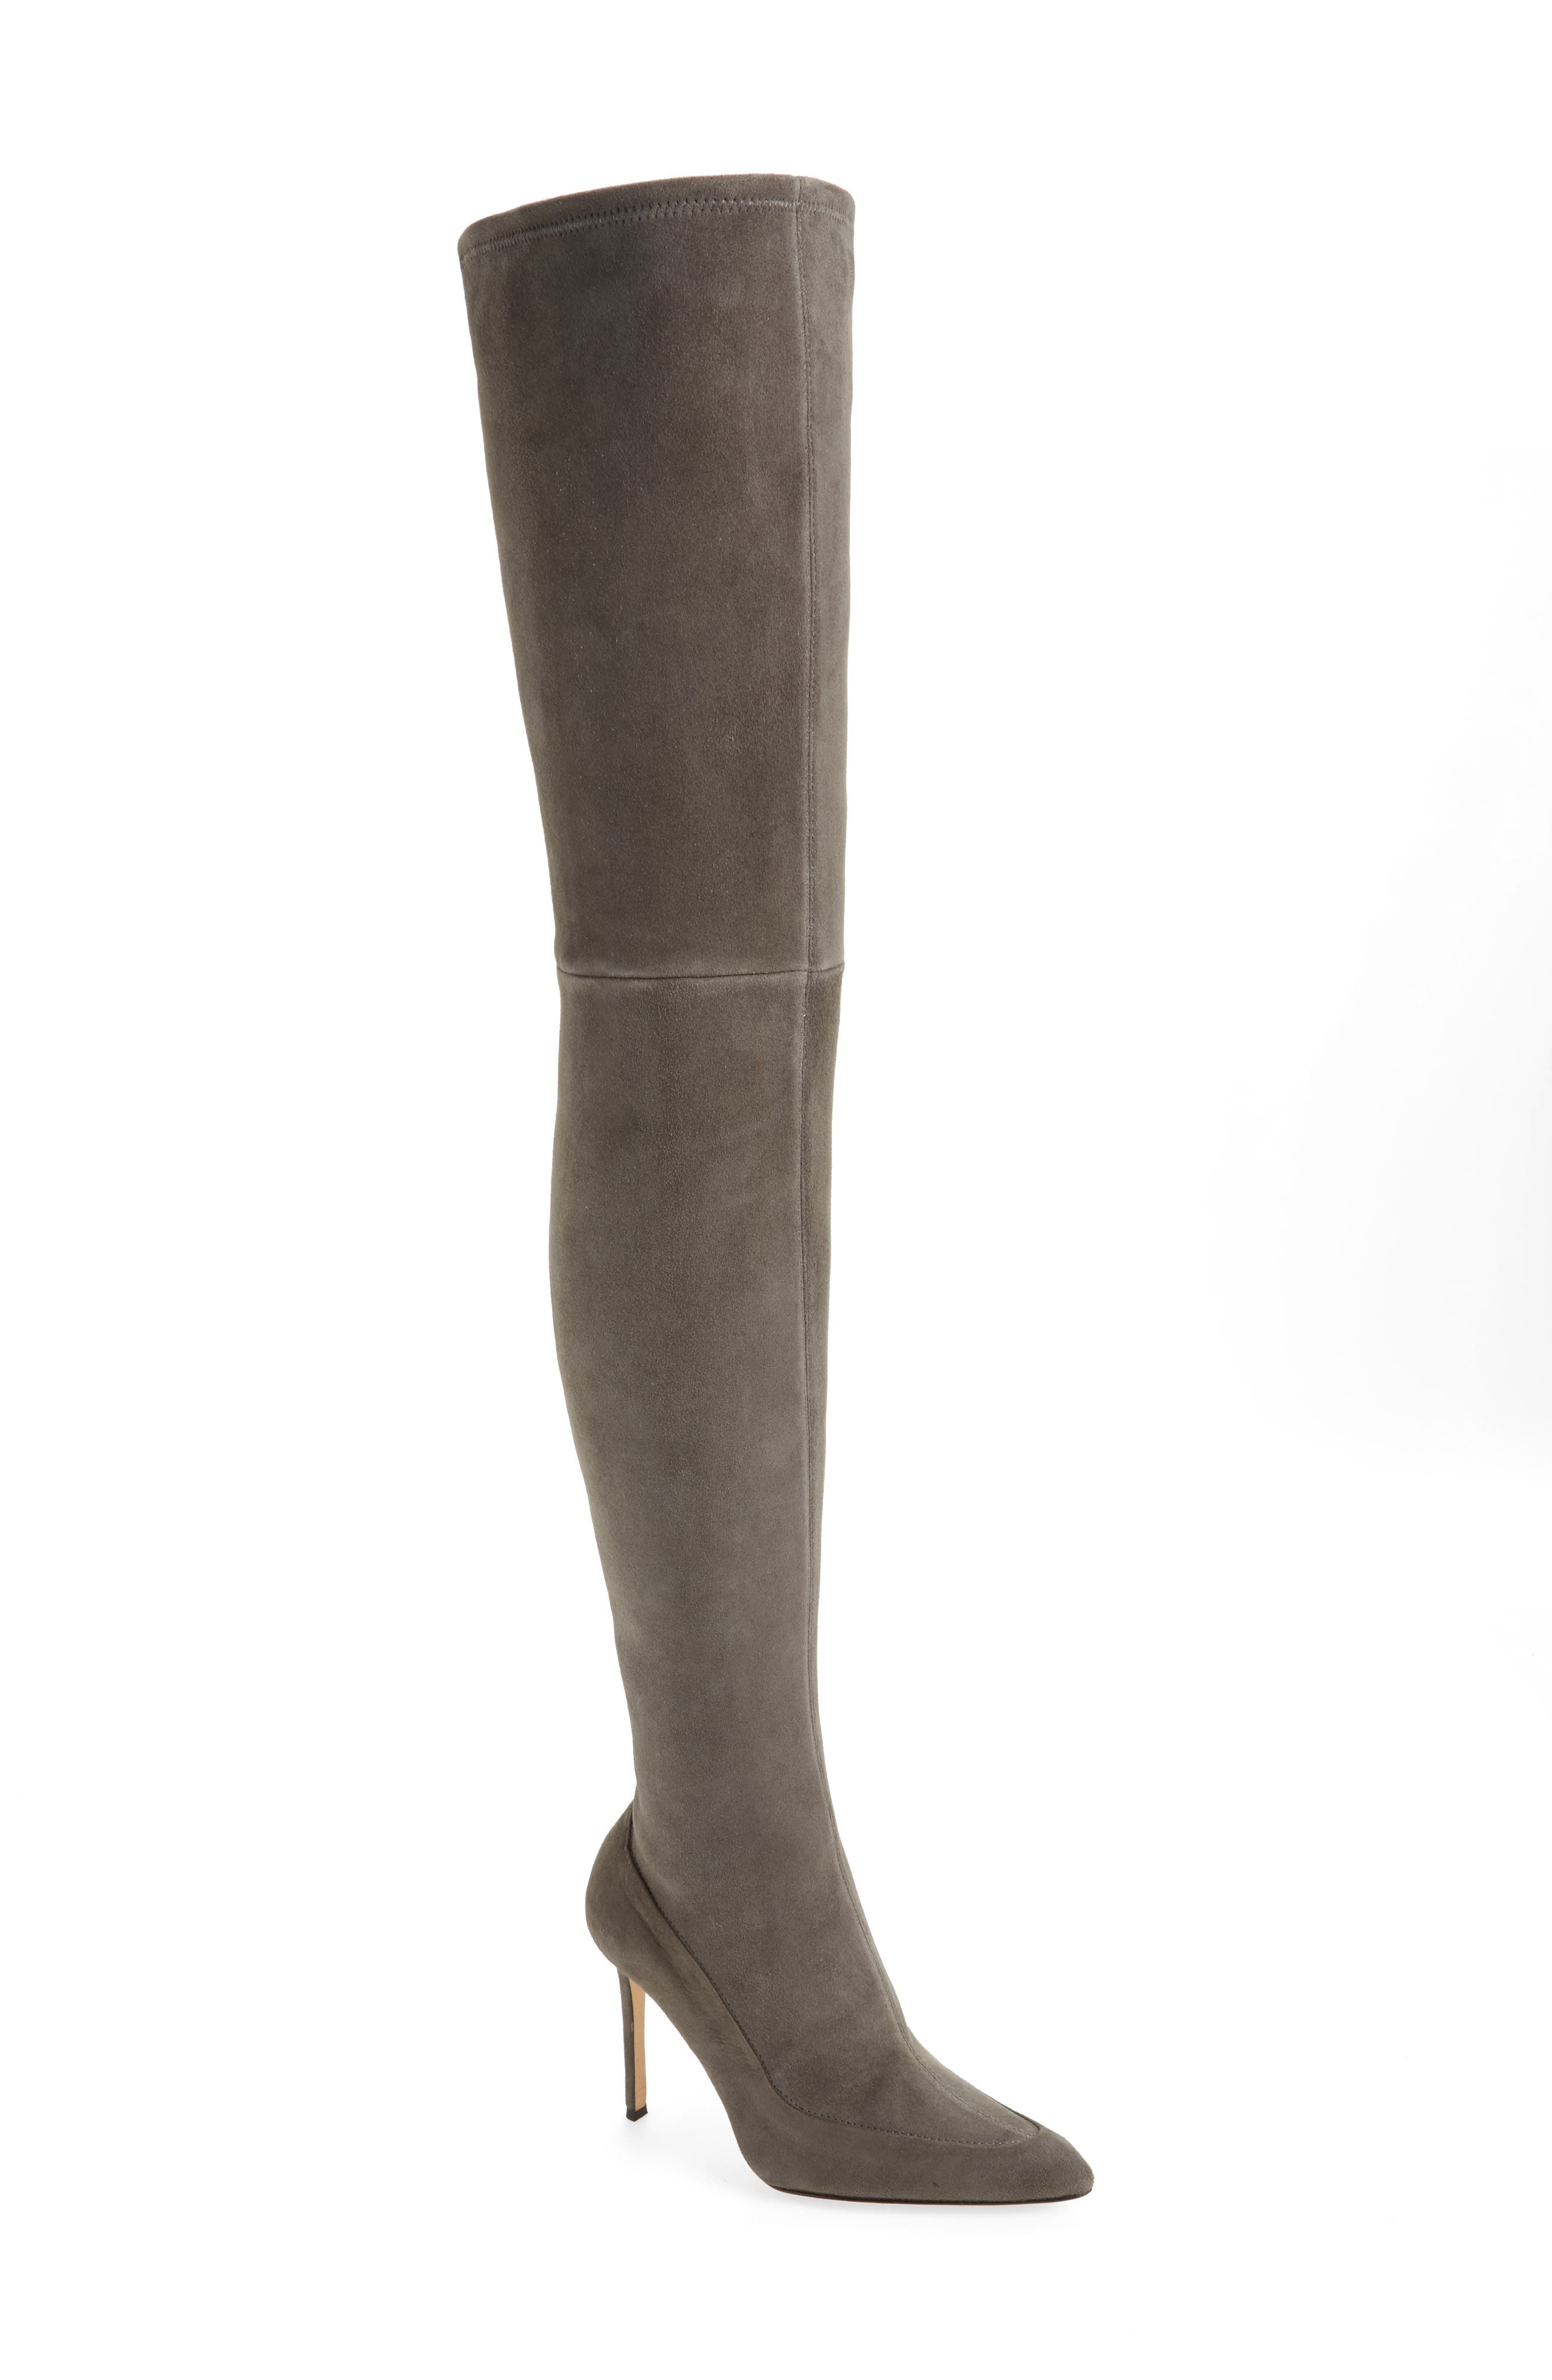 Cassie Thigh High Boot,                         Main,                         color, Anthracite Suede